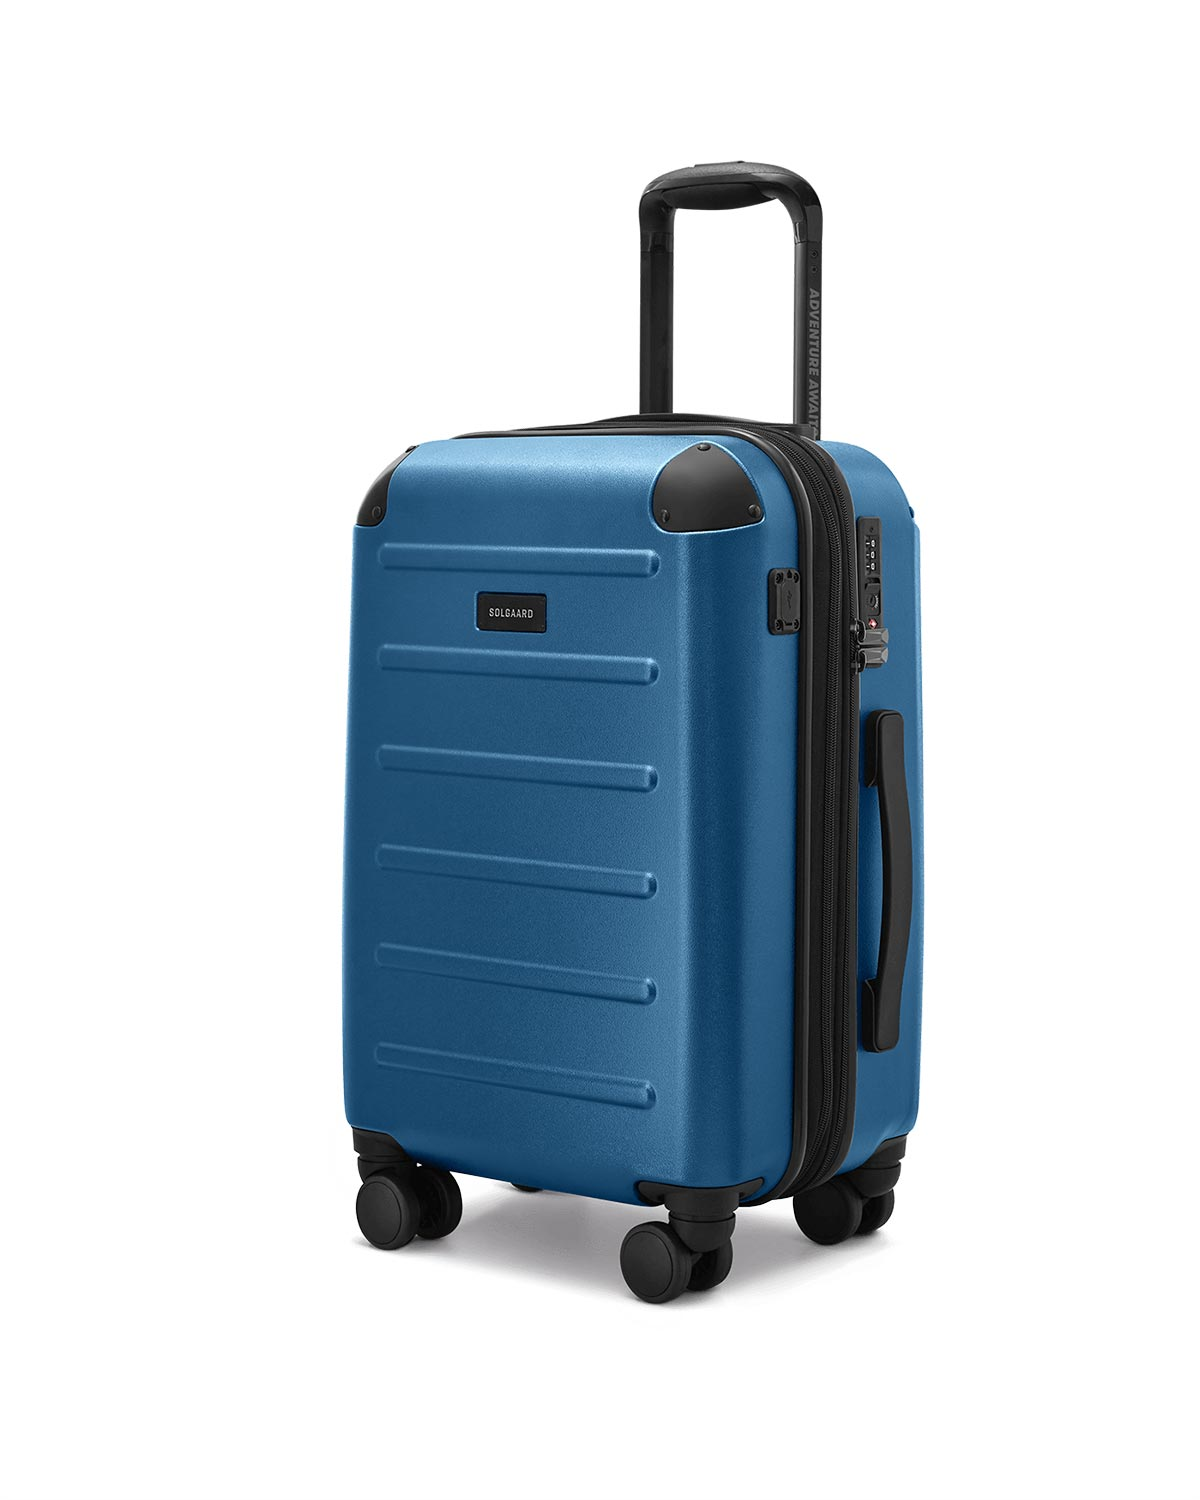 The Carry-On - Balearic Blue